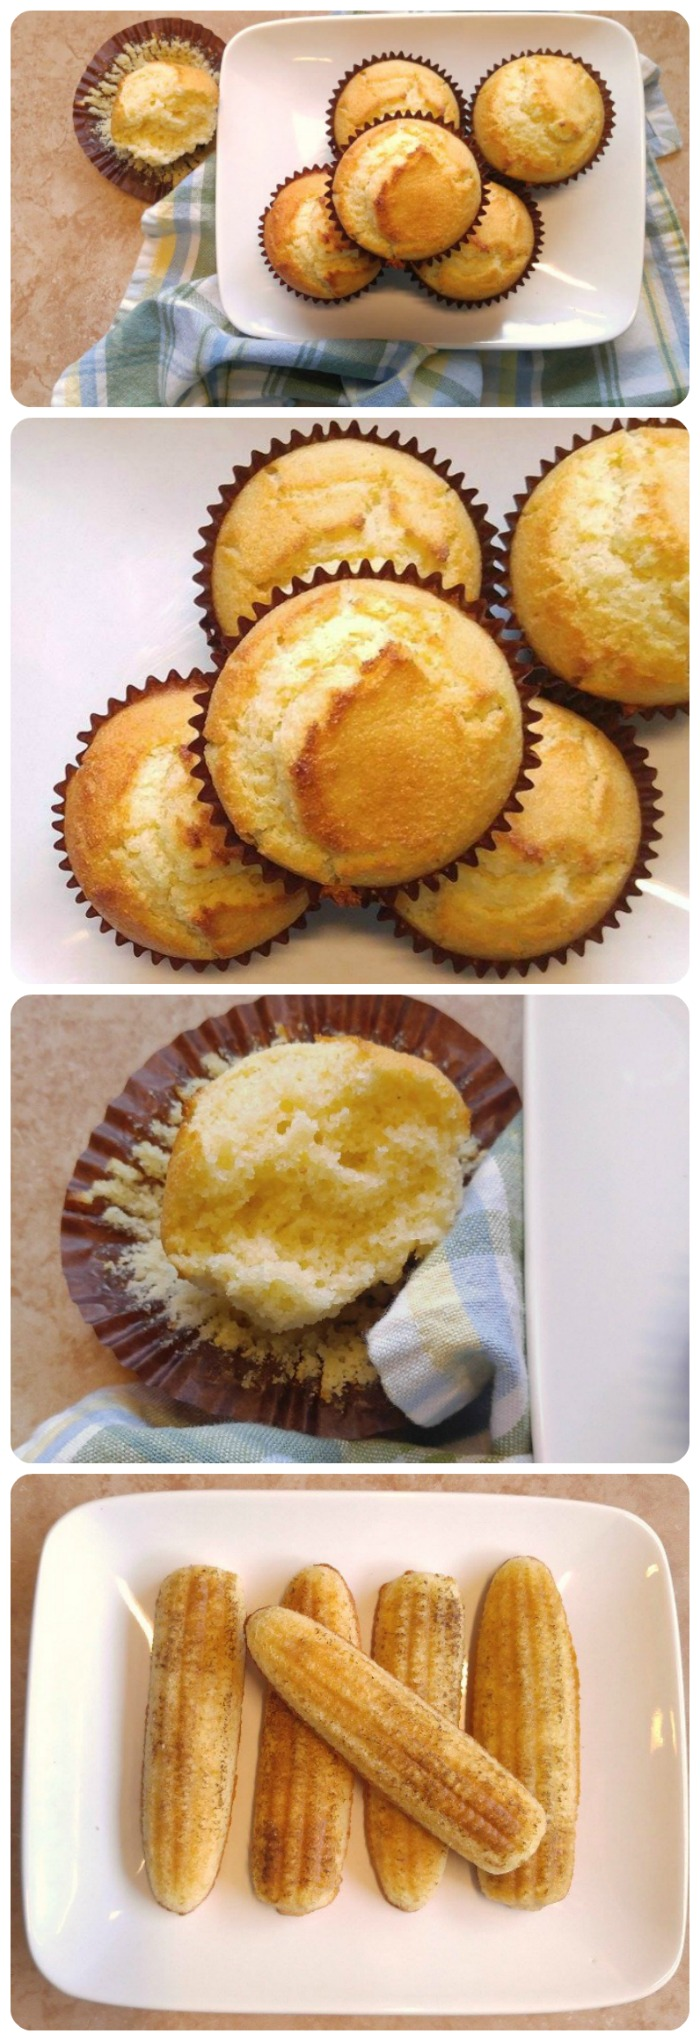 This recipe for buttermilk corn bread muffins gives a very light and fluffy muffin or corn bread stick.